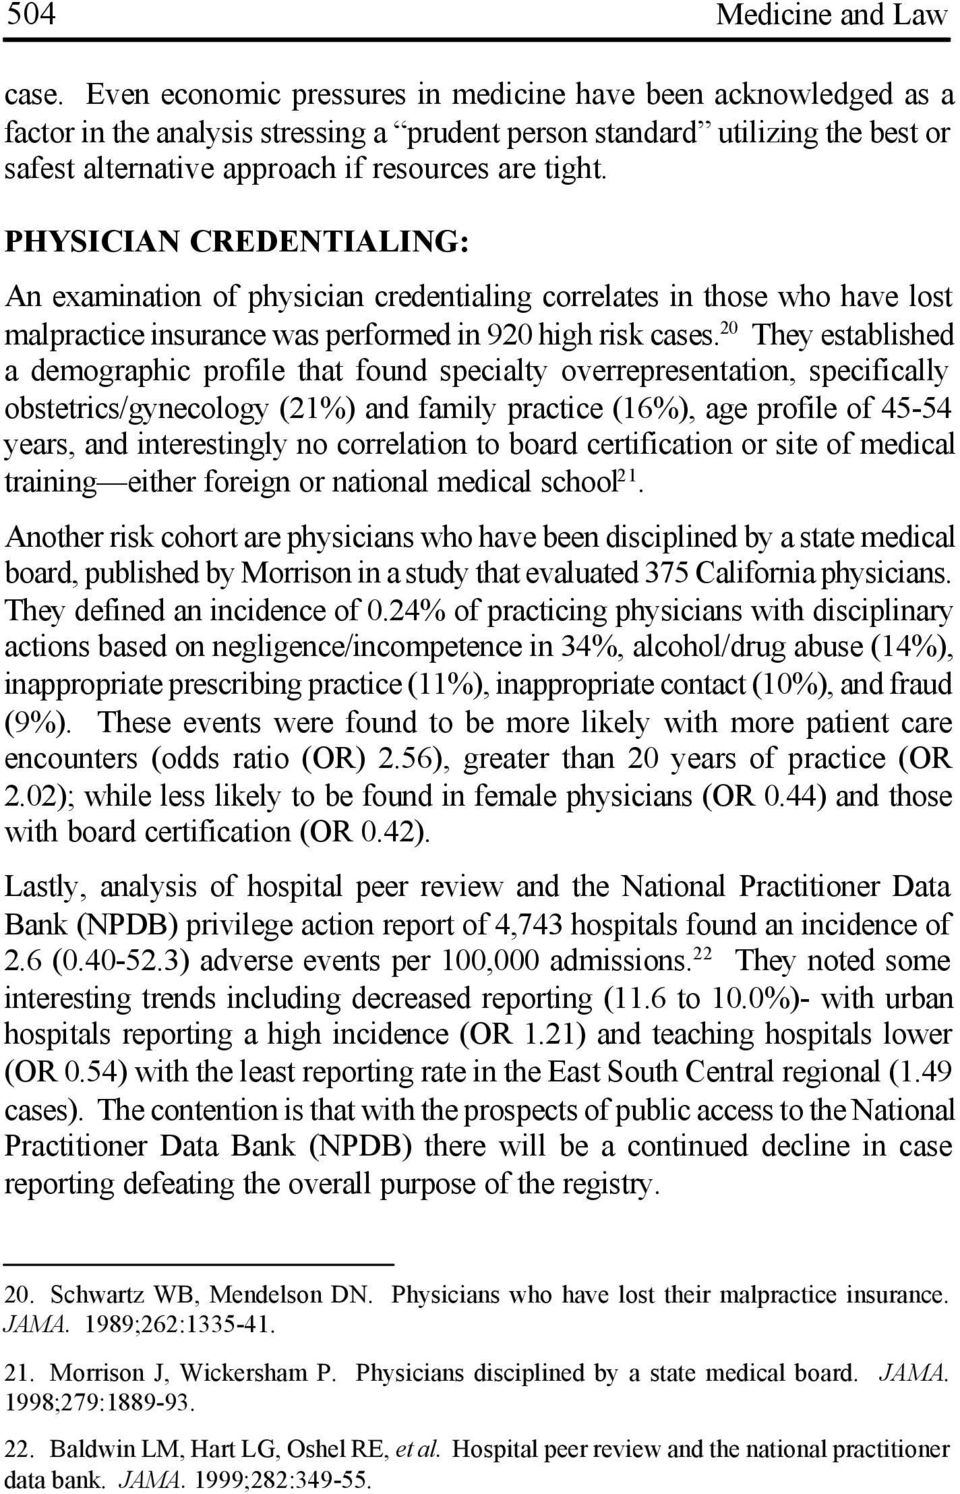 PHYSICIAN CREDENTIALING: An examination of physician credentialing correlates in those who have lost malpractice insurance was performed in 920 high risk cases.